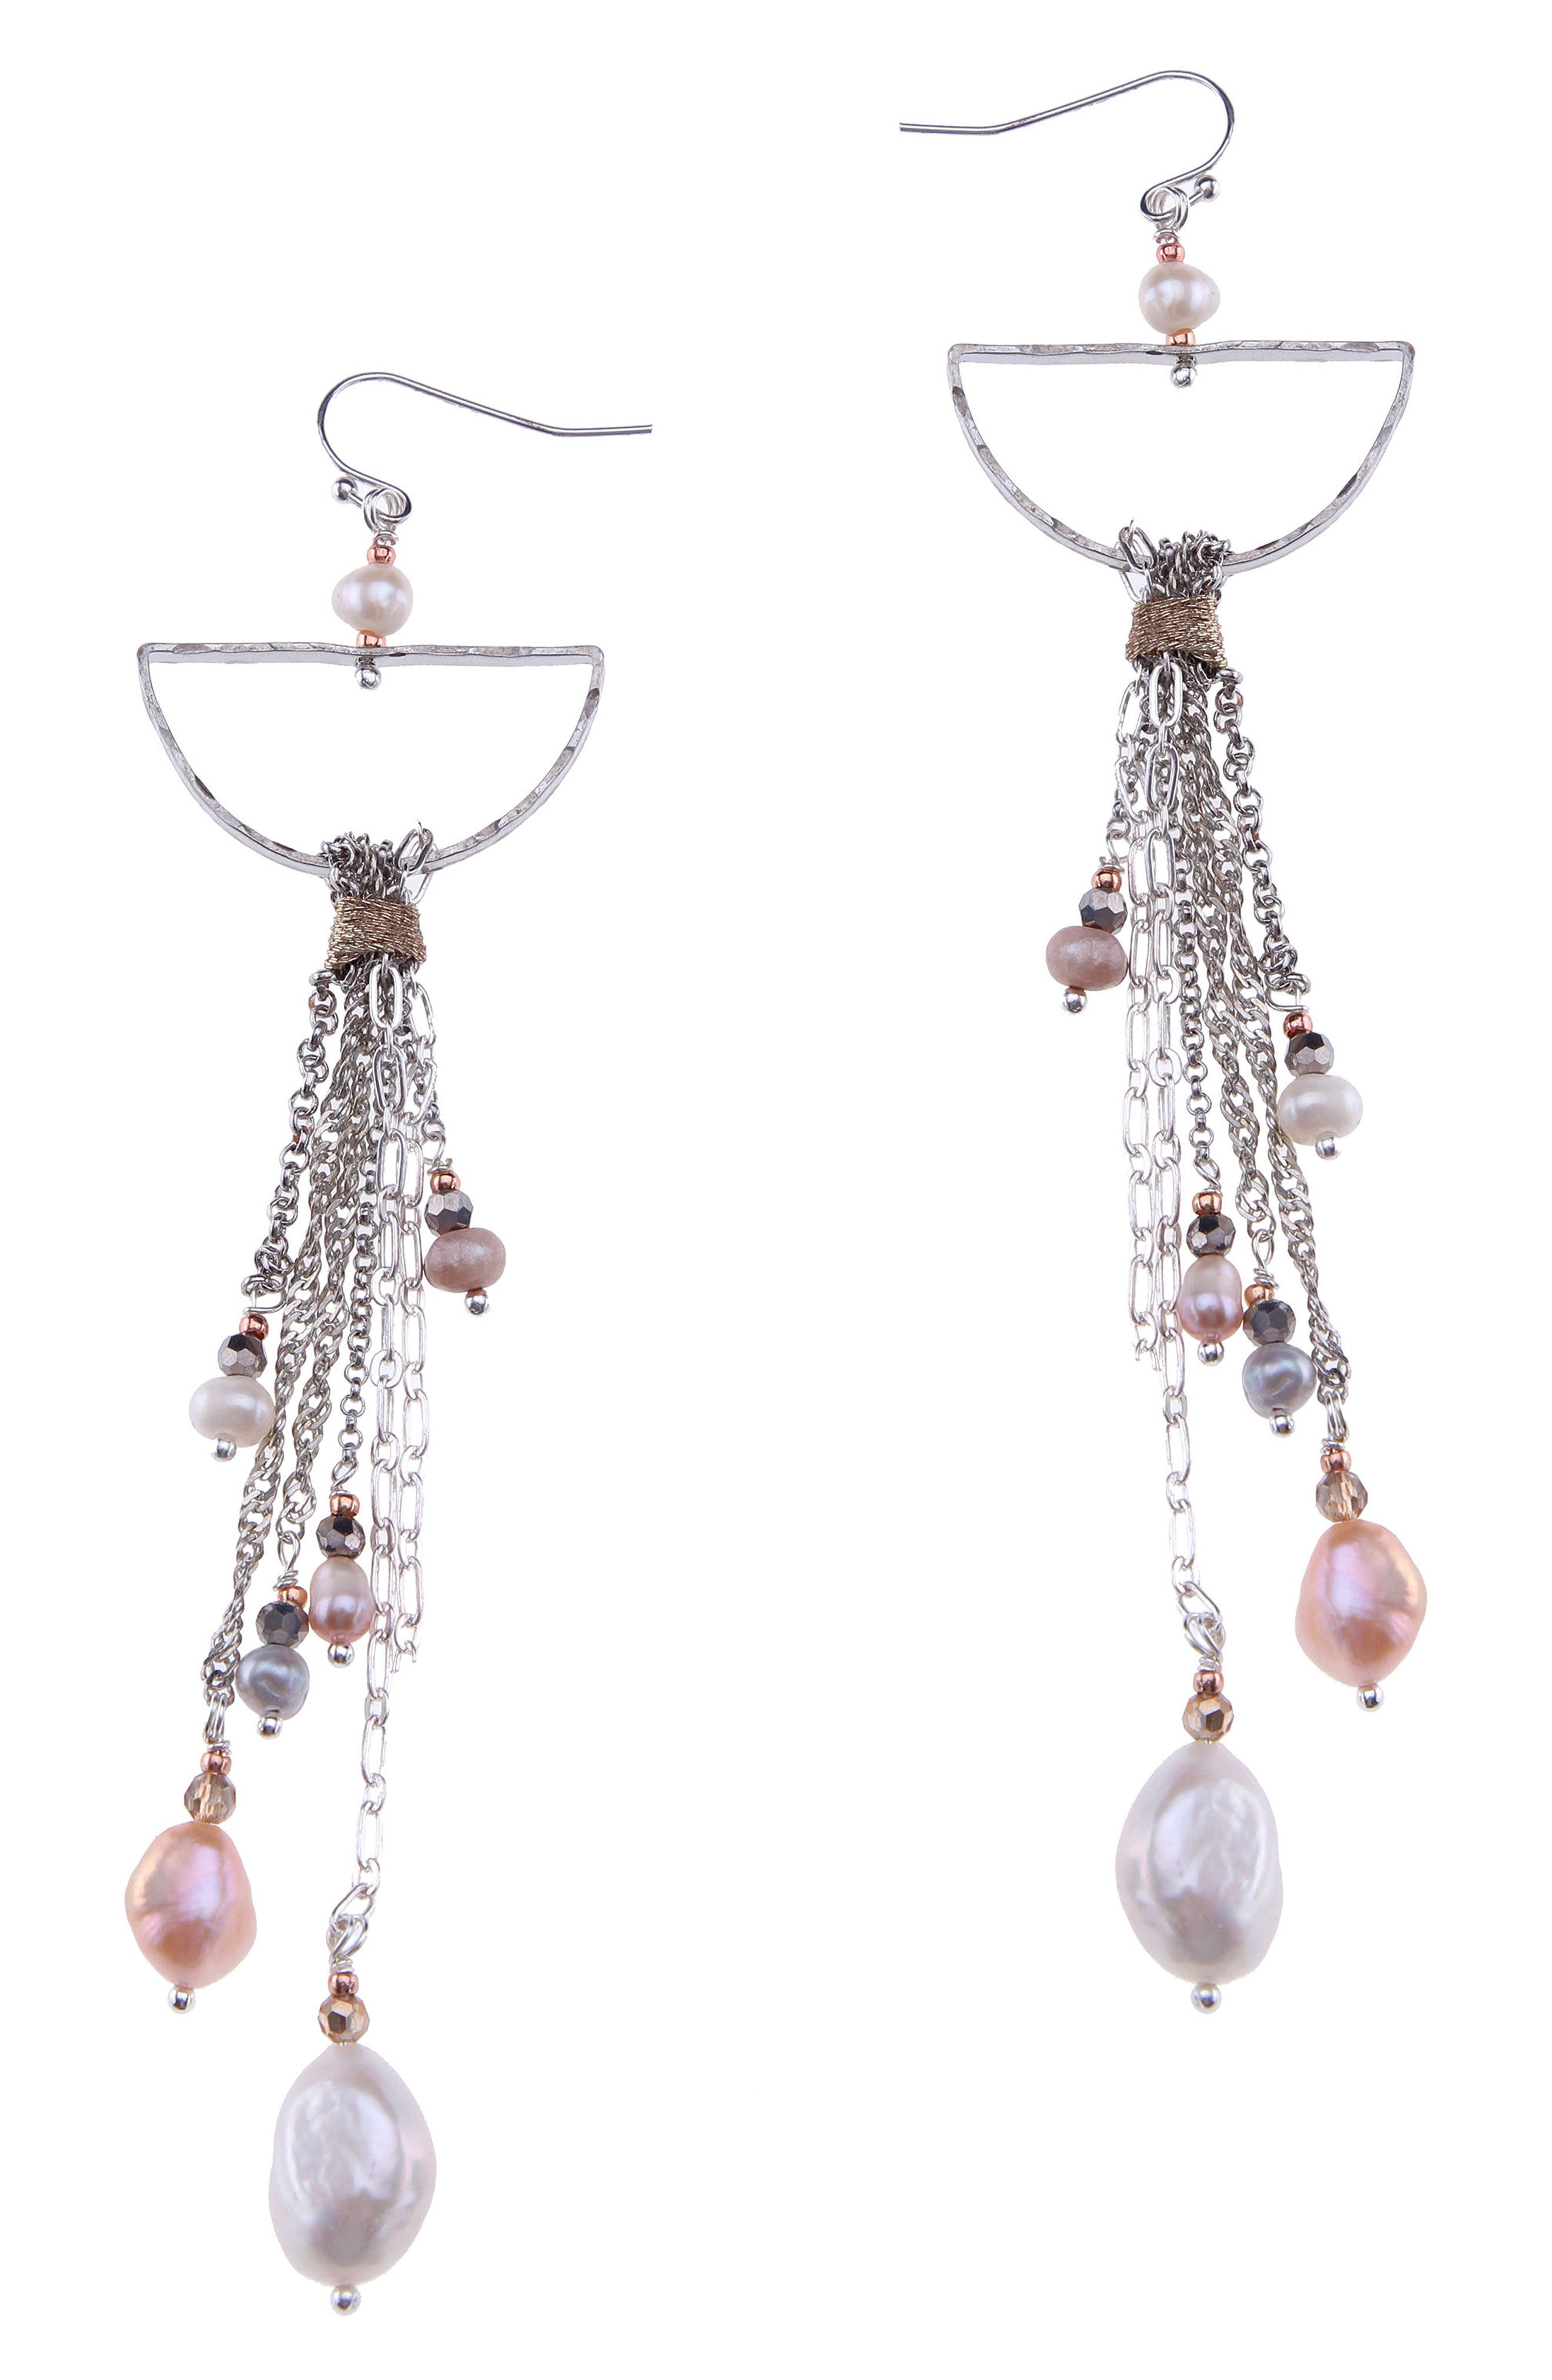 Freshwater Pearl & Chain Statement Earrings,                             Main thumbnail 1, color,                             White Pearl